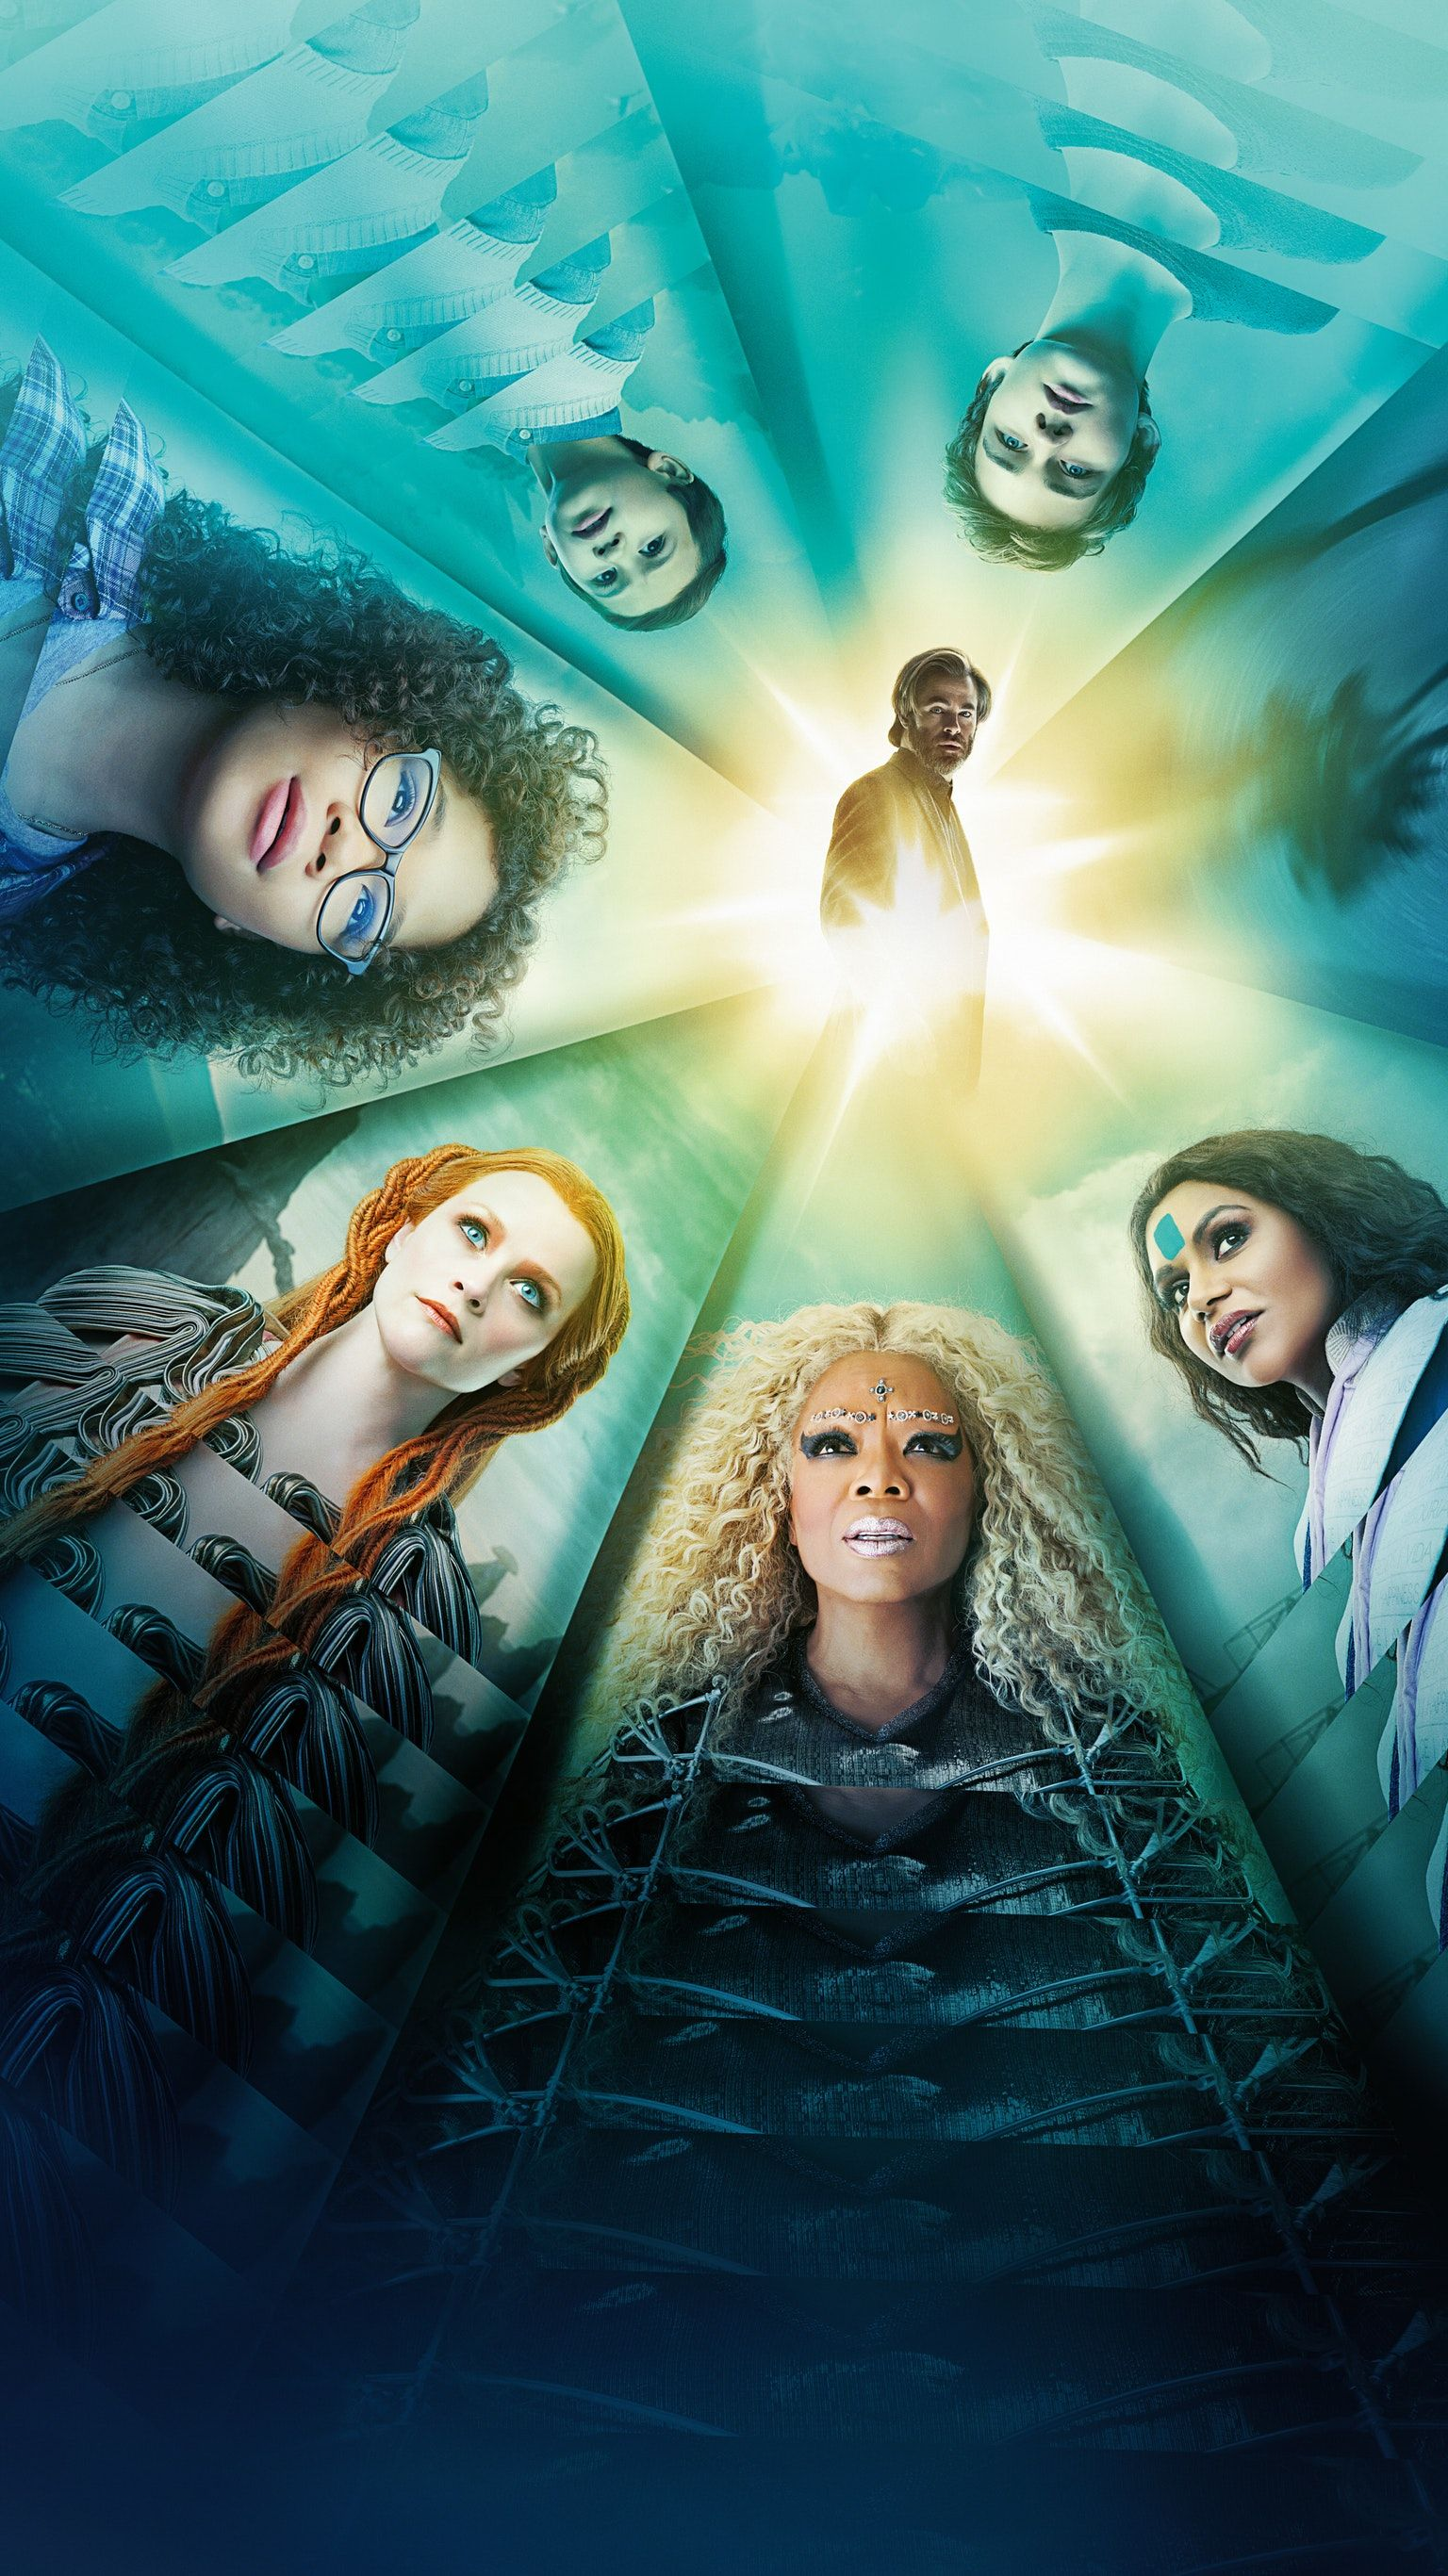 A Wrinkle In Time 2018 Phone Wallpaper In 2020 A Wrinkle In